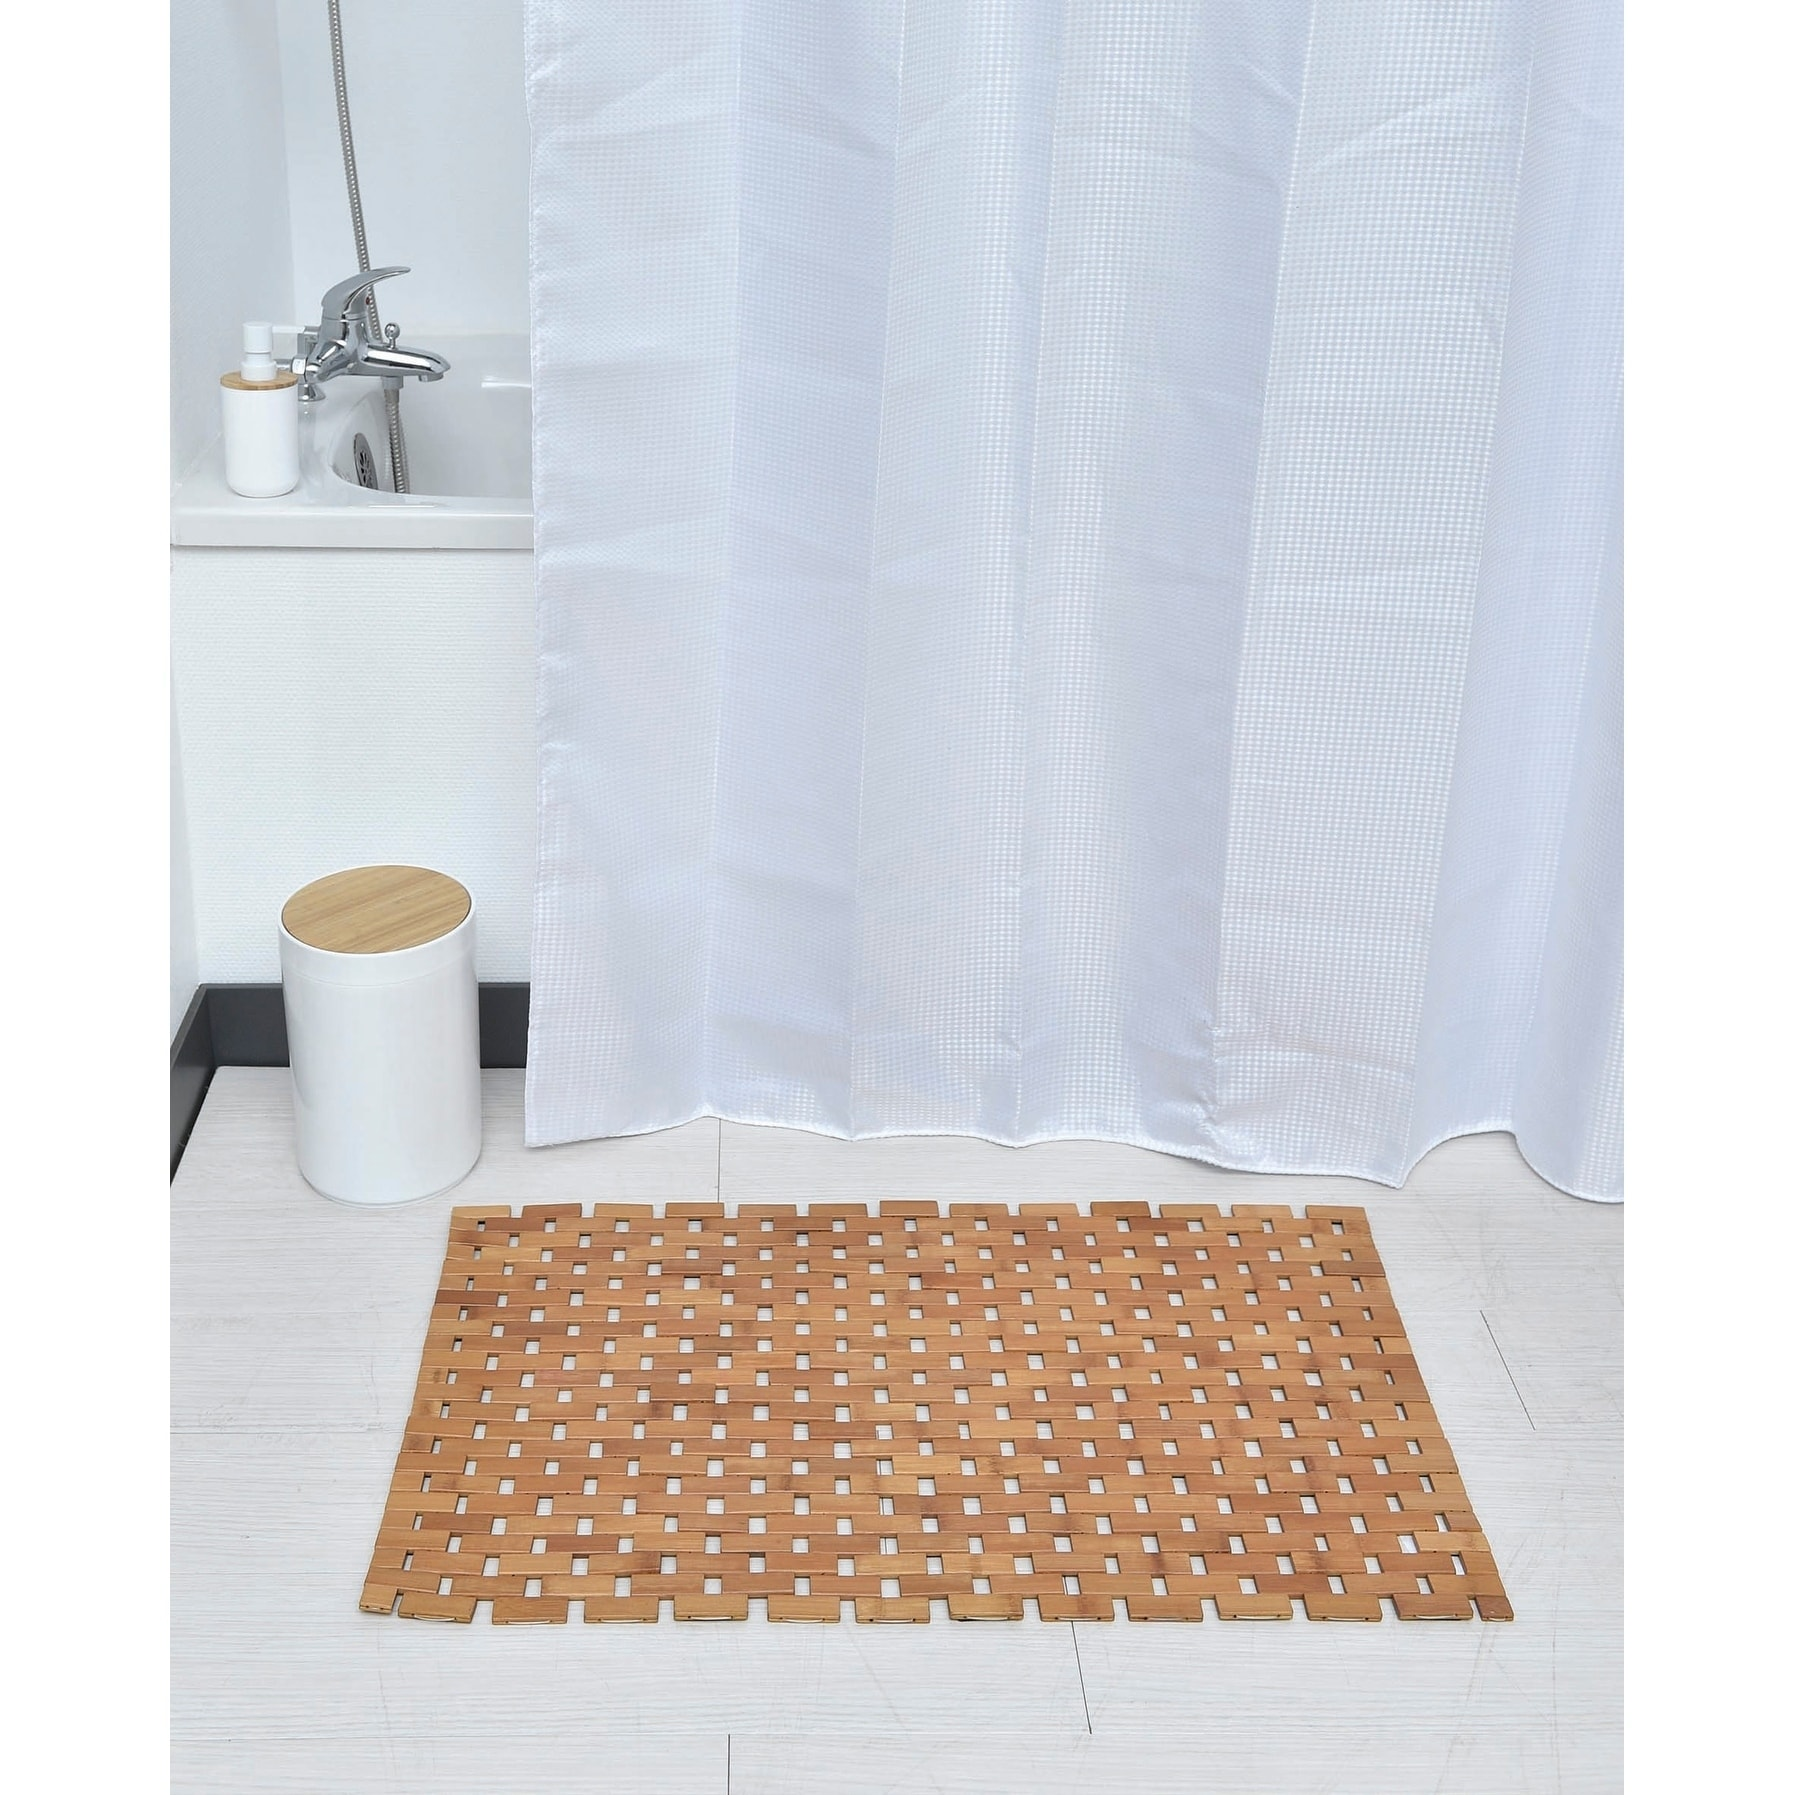 Shop Evideco Rectangular Bathroom Bamboo Slats Roll Up Foldable Shower Door Rug